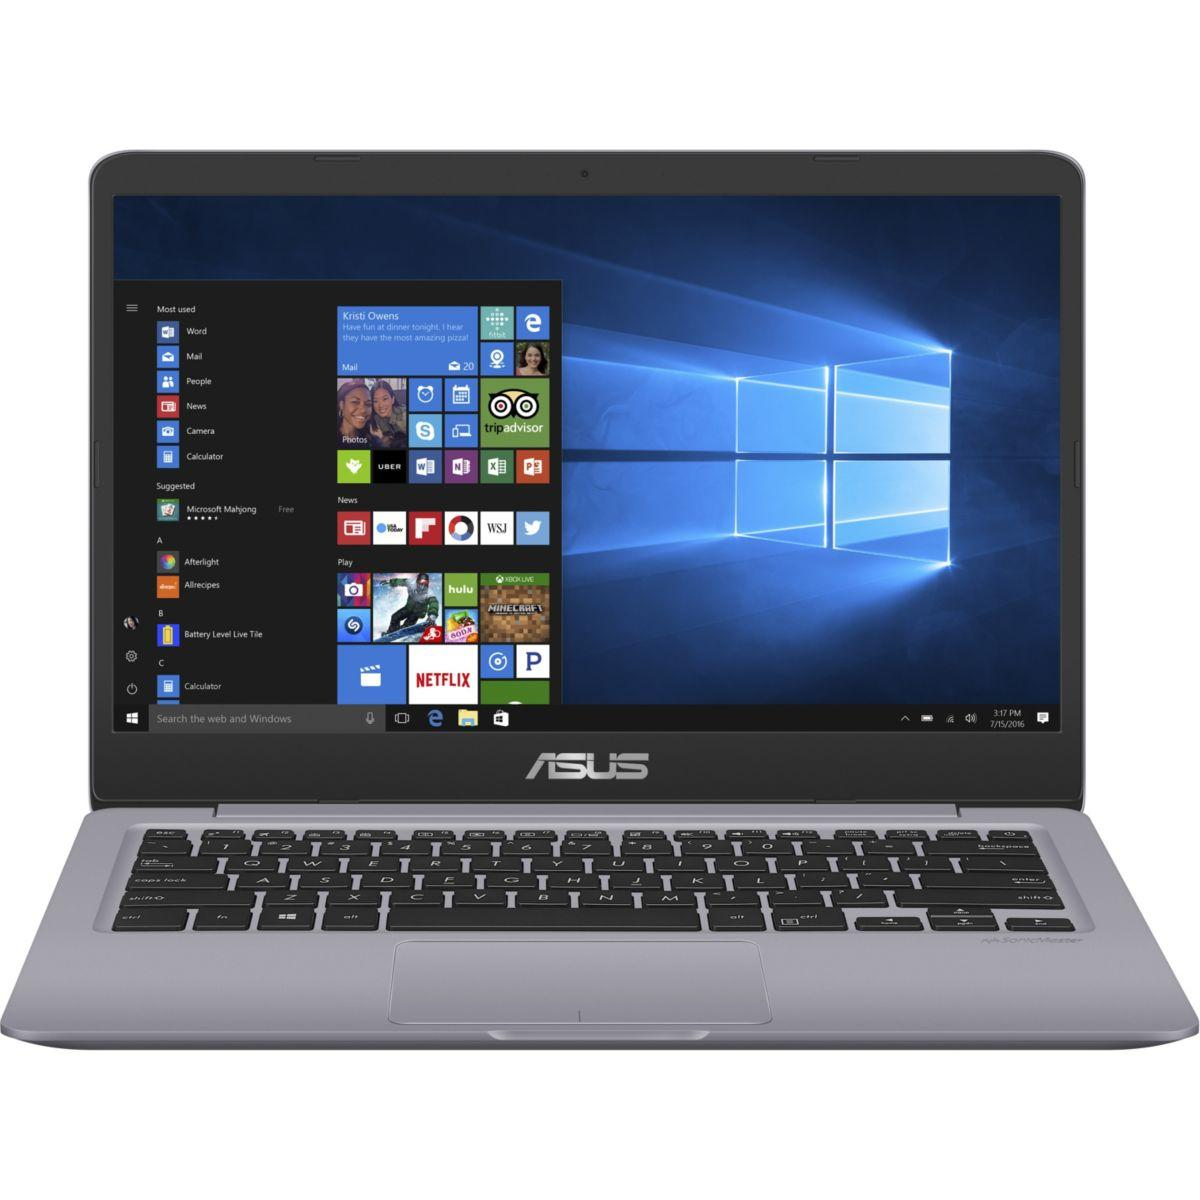 Portable asus s410un-eb081t (photo)